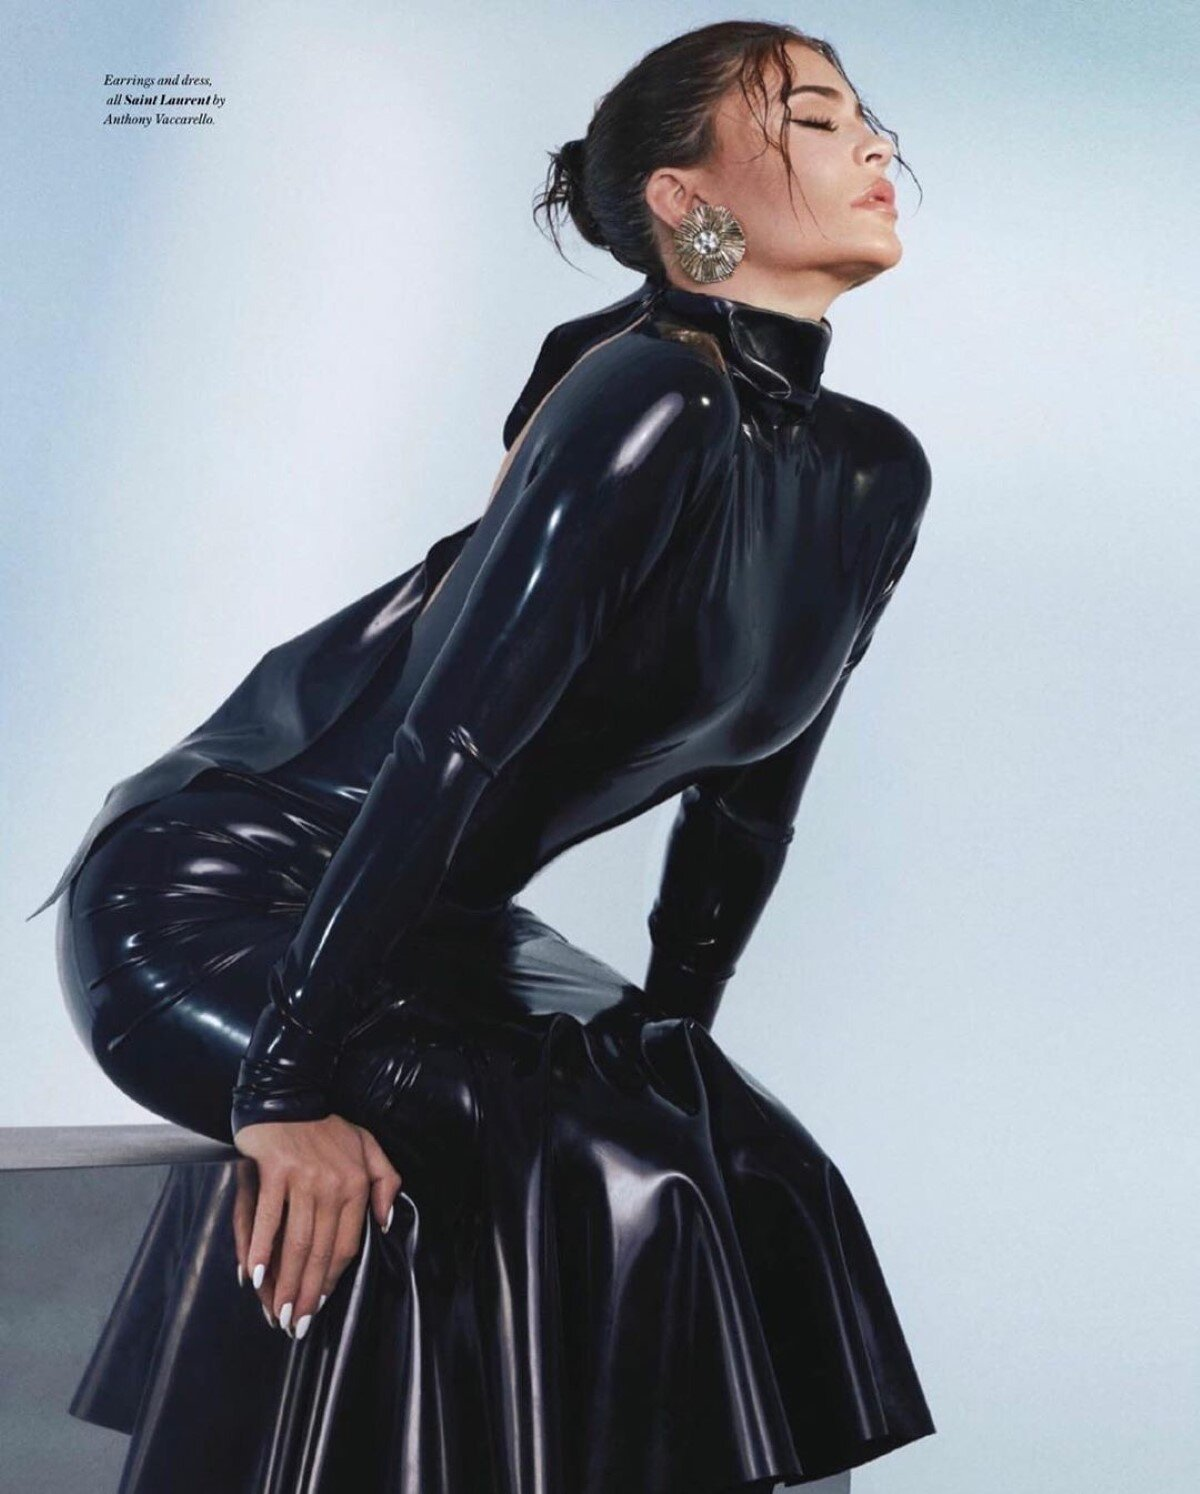 Kylie Jenner covers the August 2020 issue of Vogue Hong Kong. Photographed by Greg Swales and styled by Jill Jacobs in the latex YSL AW2020 collection.